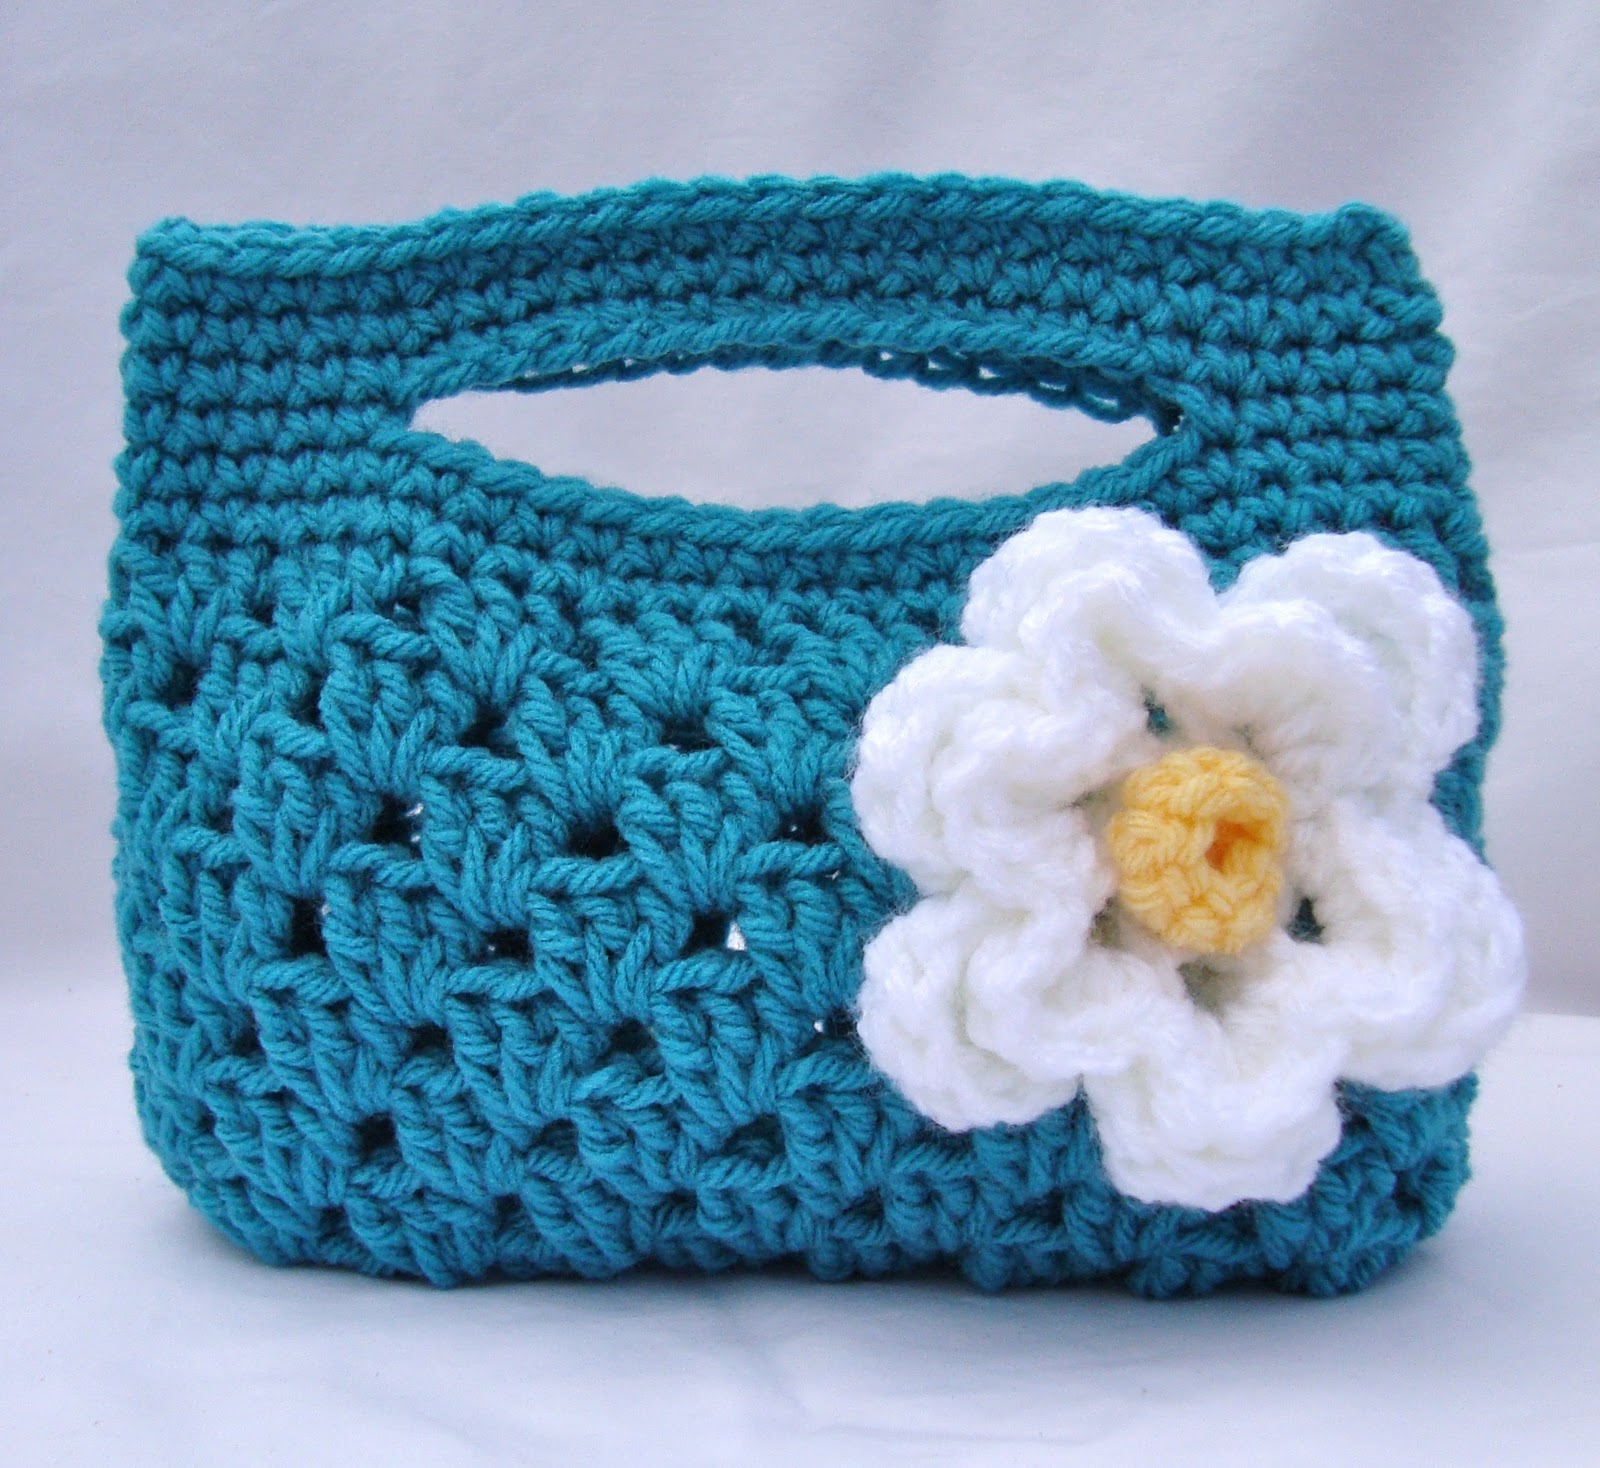 Crochet Purse Patterns Free : tangled happy: Granny Stripe Boutique Bag